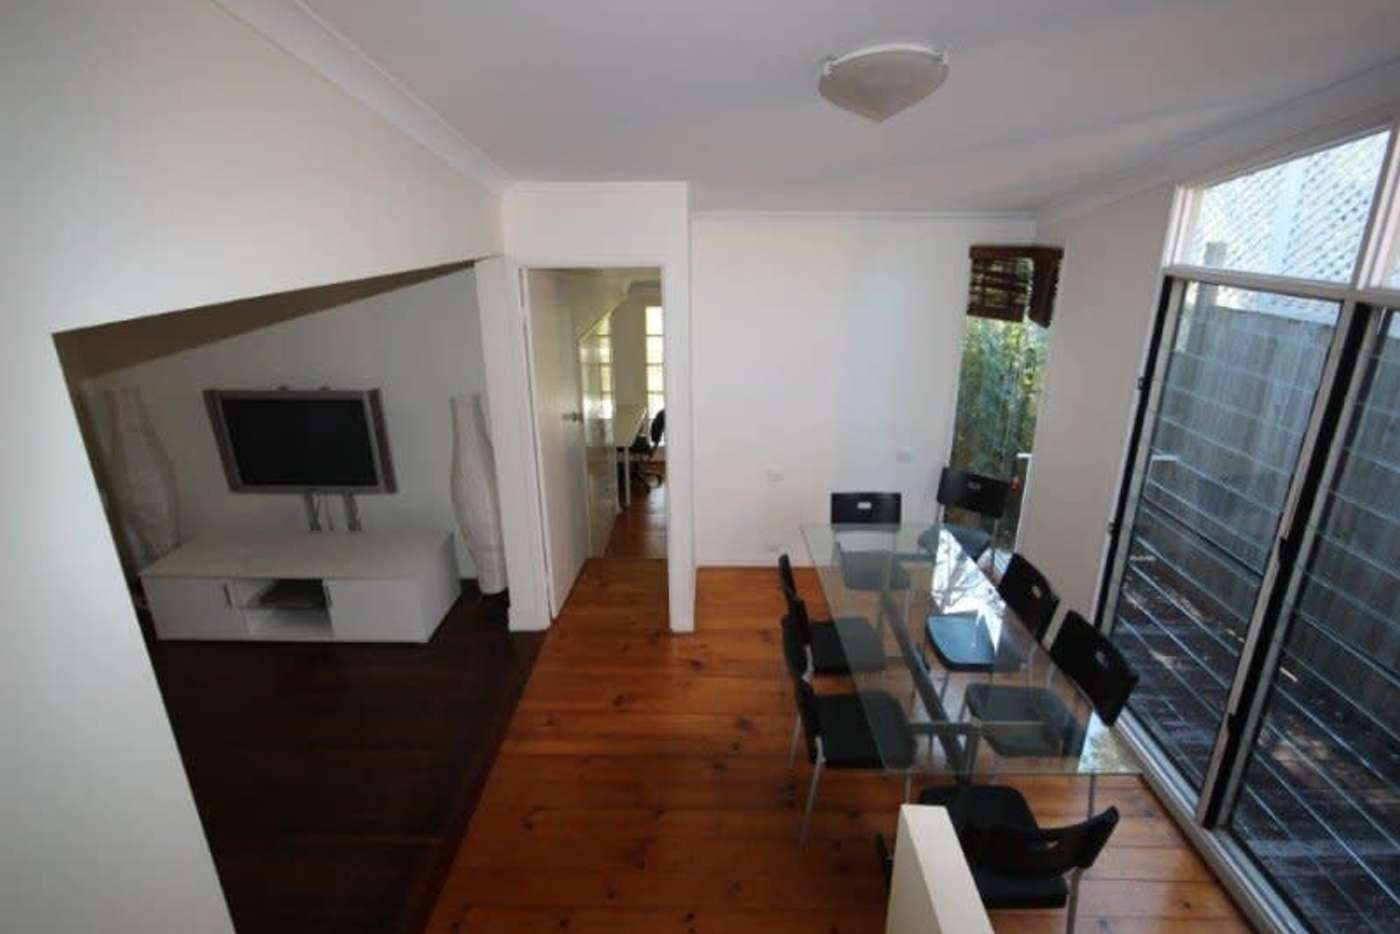 Main view of Homely house listing, 178 Hawken Drive, St Lucia QLD 4067